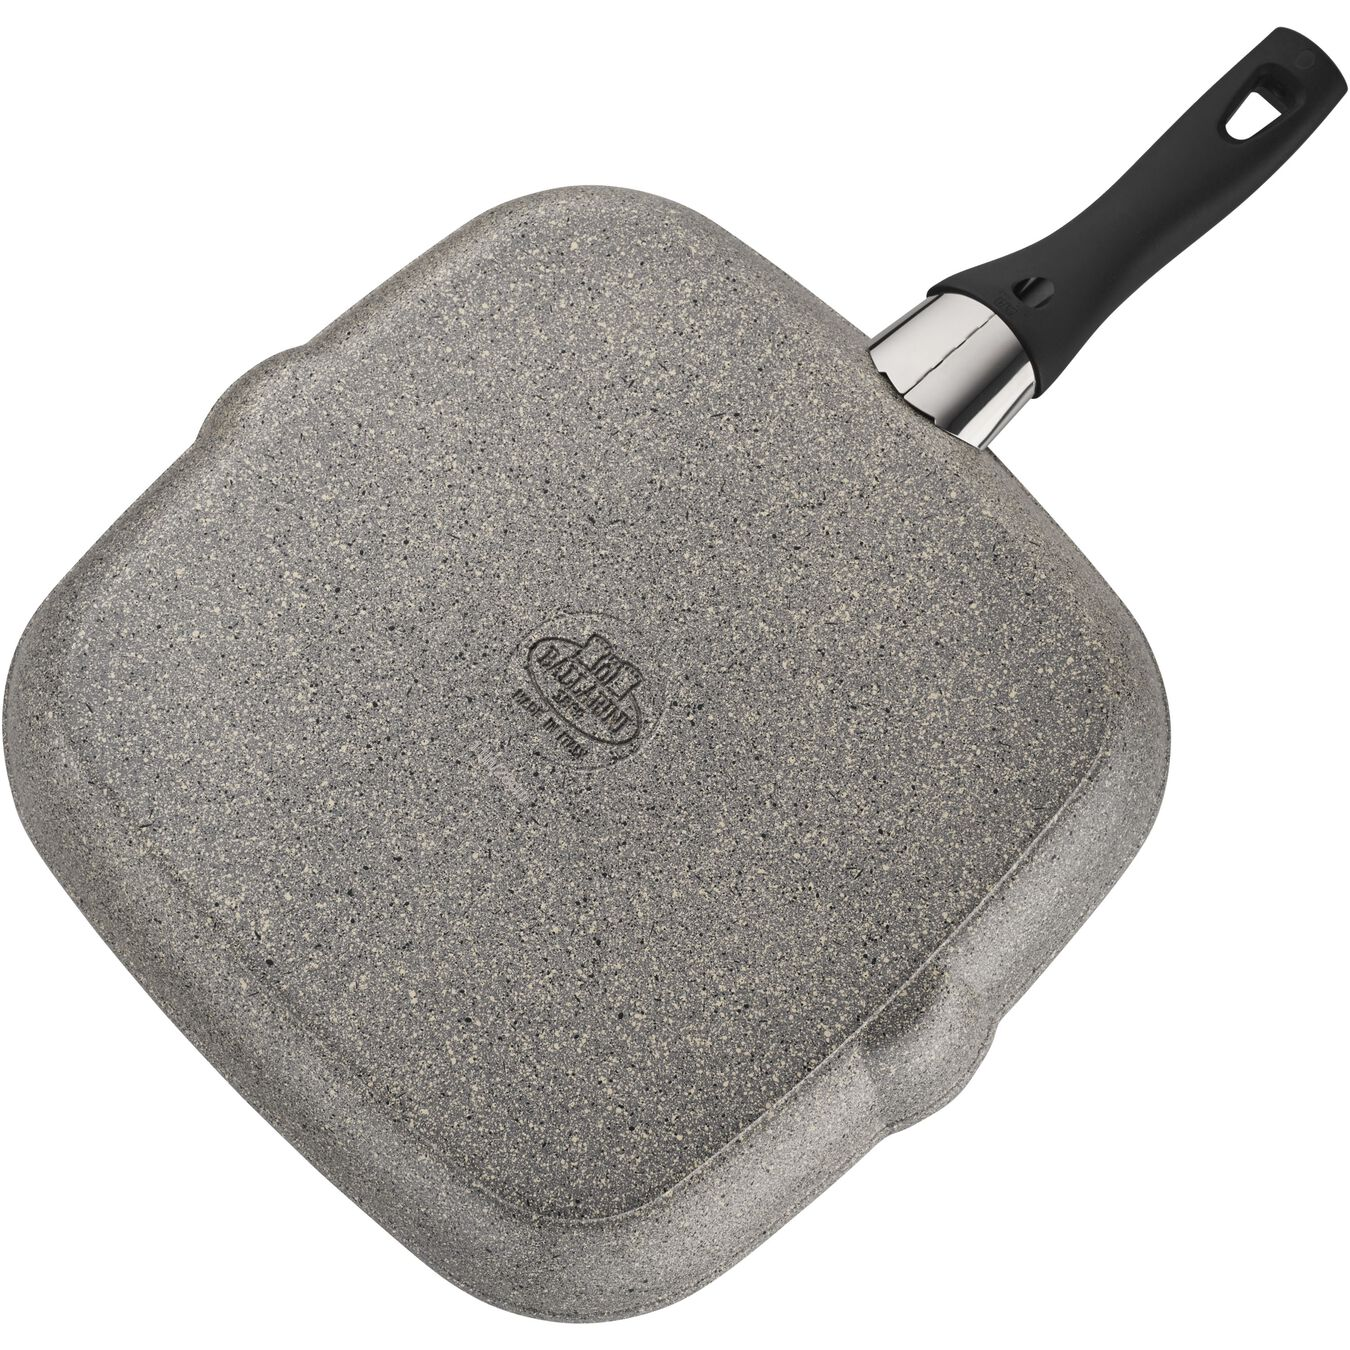 11-inch, Non-stick, Grill pan,,large 3